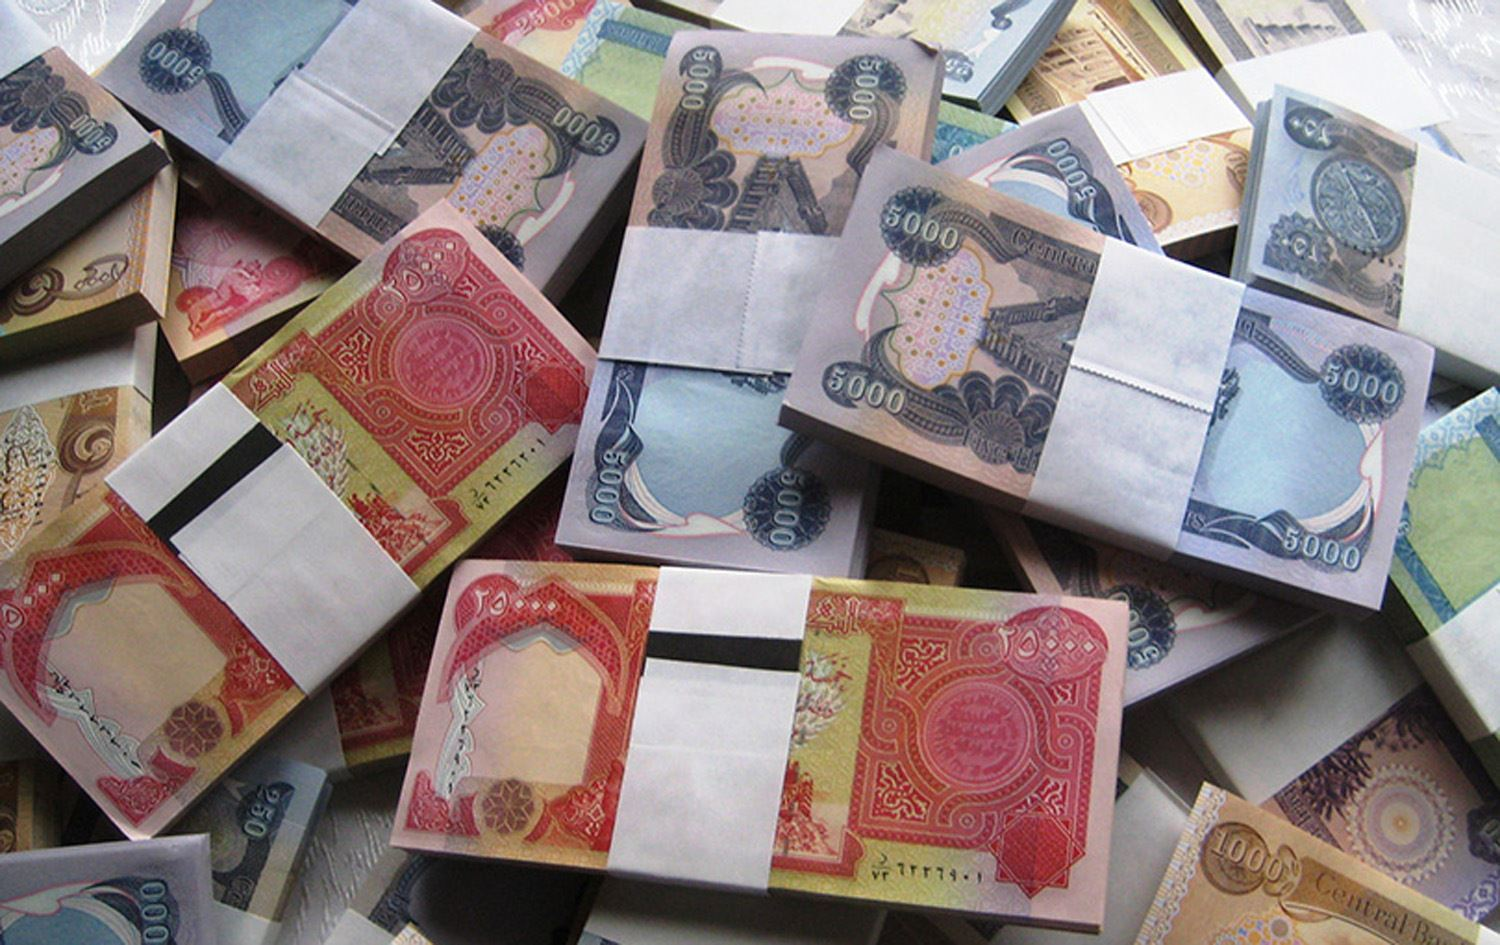 Unprofessional banks and unstable security situation are making Iraqis keep their money at home, MP says